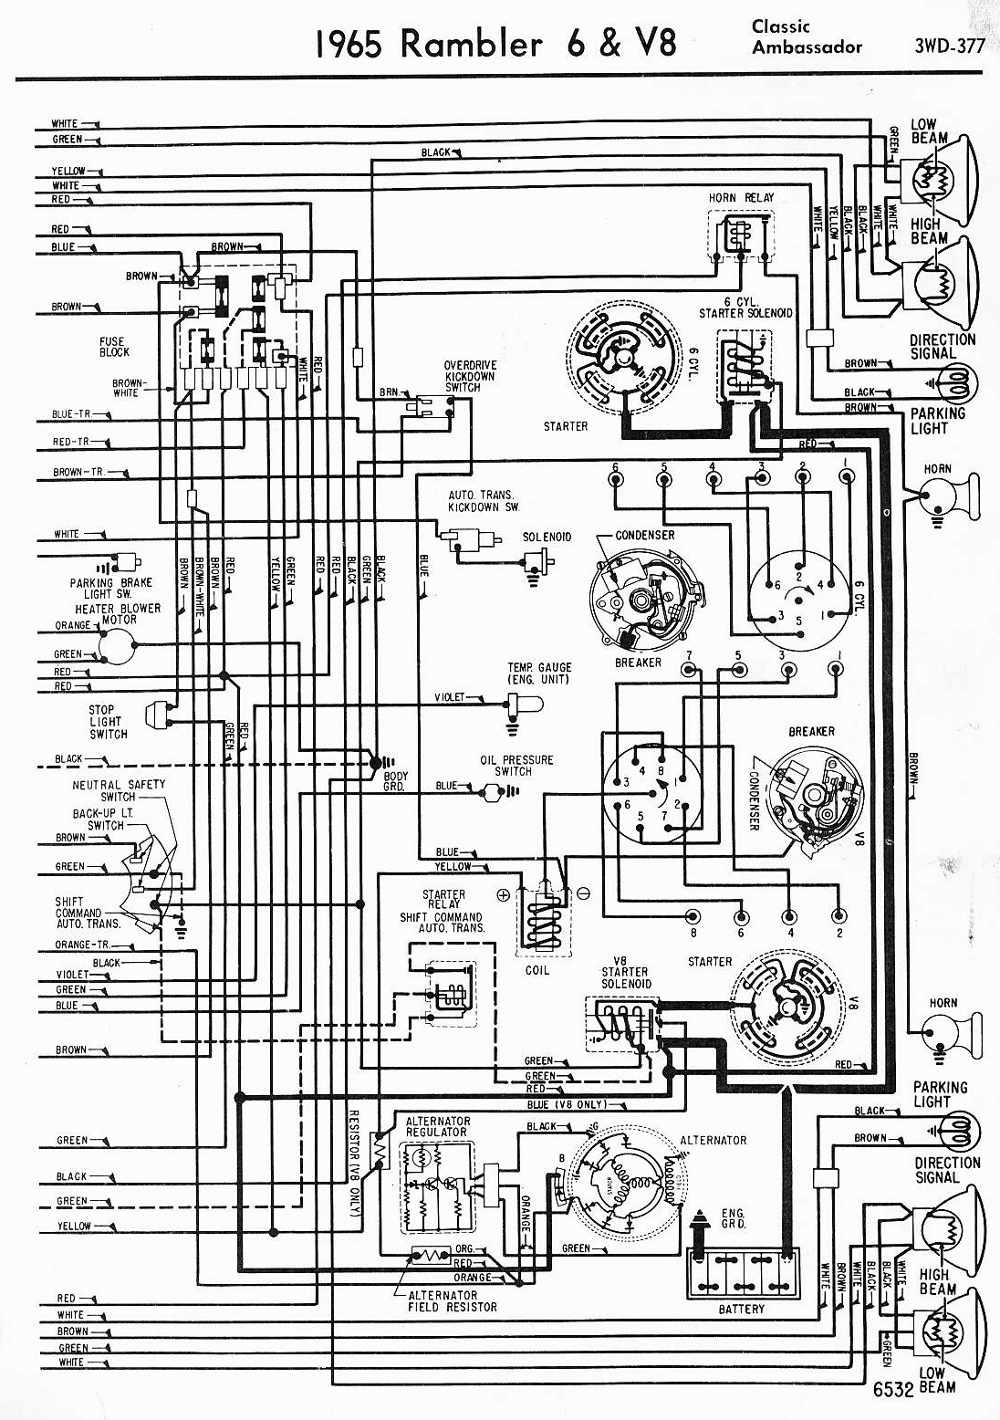 amc car manuals wiring diagrams pdf fault codes rh automotive manuals net 1967 Ford Mustang Wiring Diagram 1967 Ford F100 Wiring Diagram